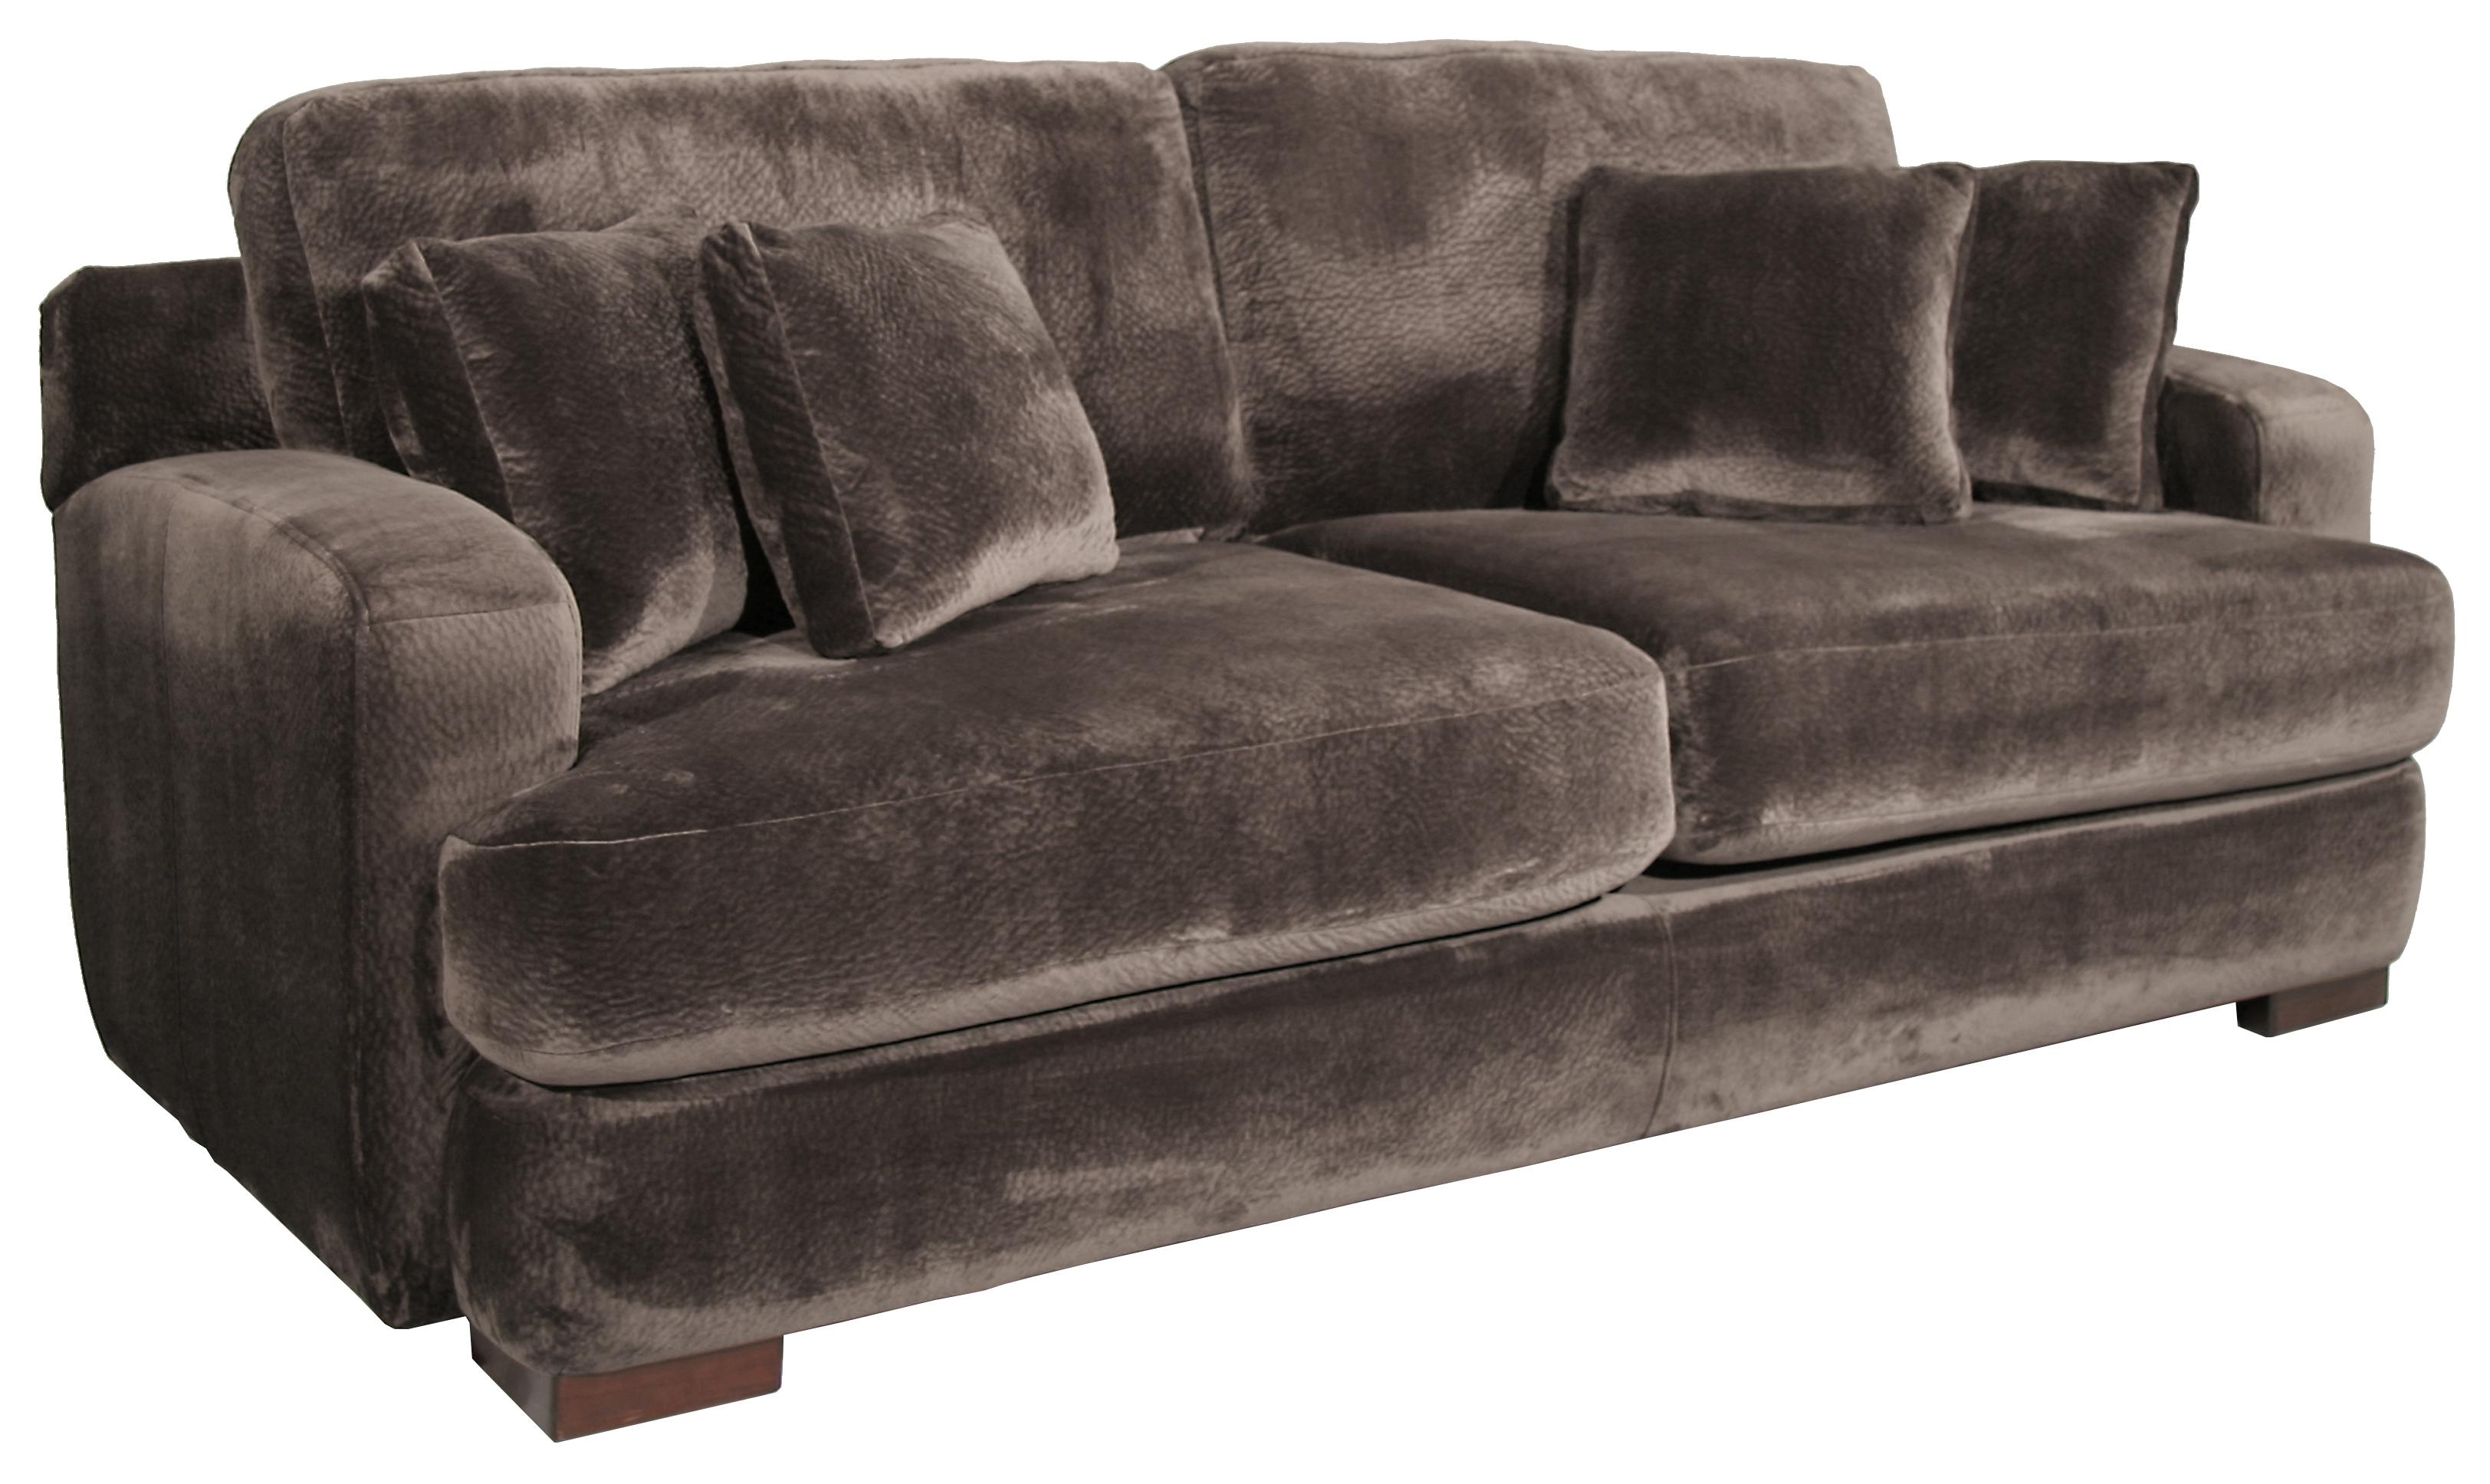 Merveilleux Riviera 668 Comfortable Sofa Sleeper With Plush Cushions And Contemporary  Style By Fairmont Designs